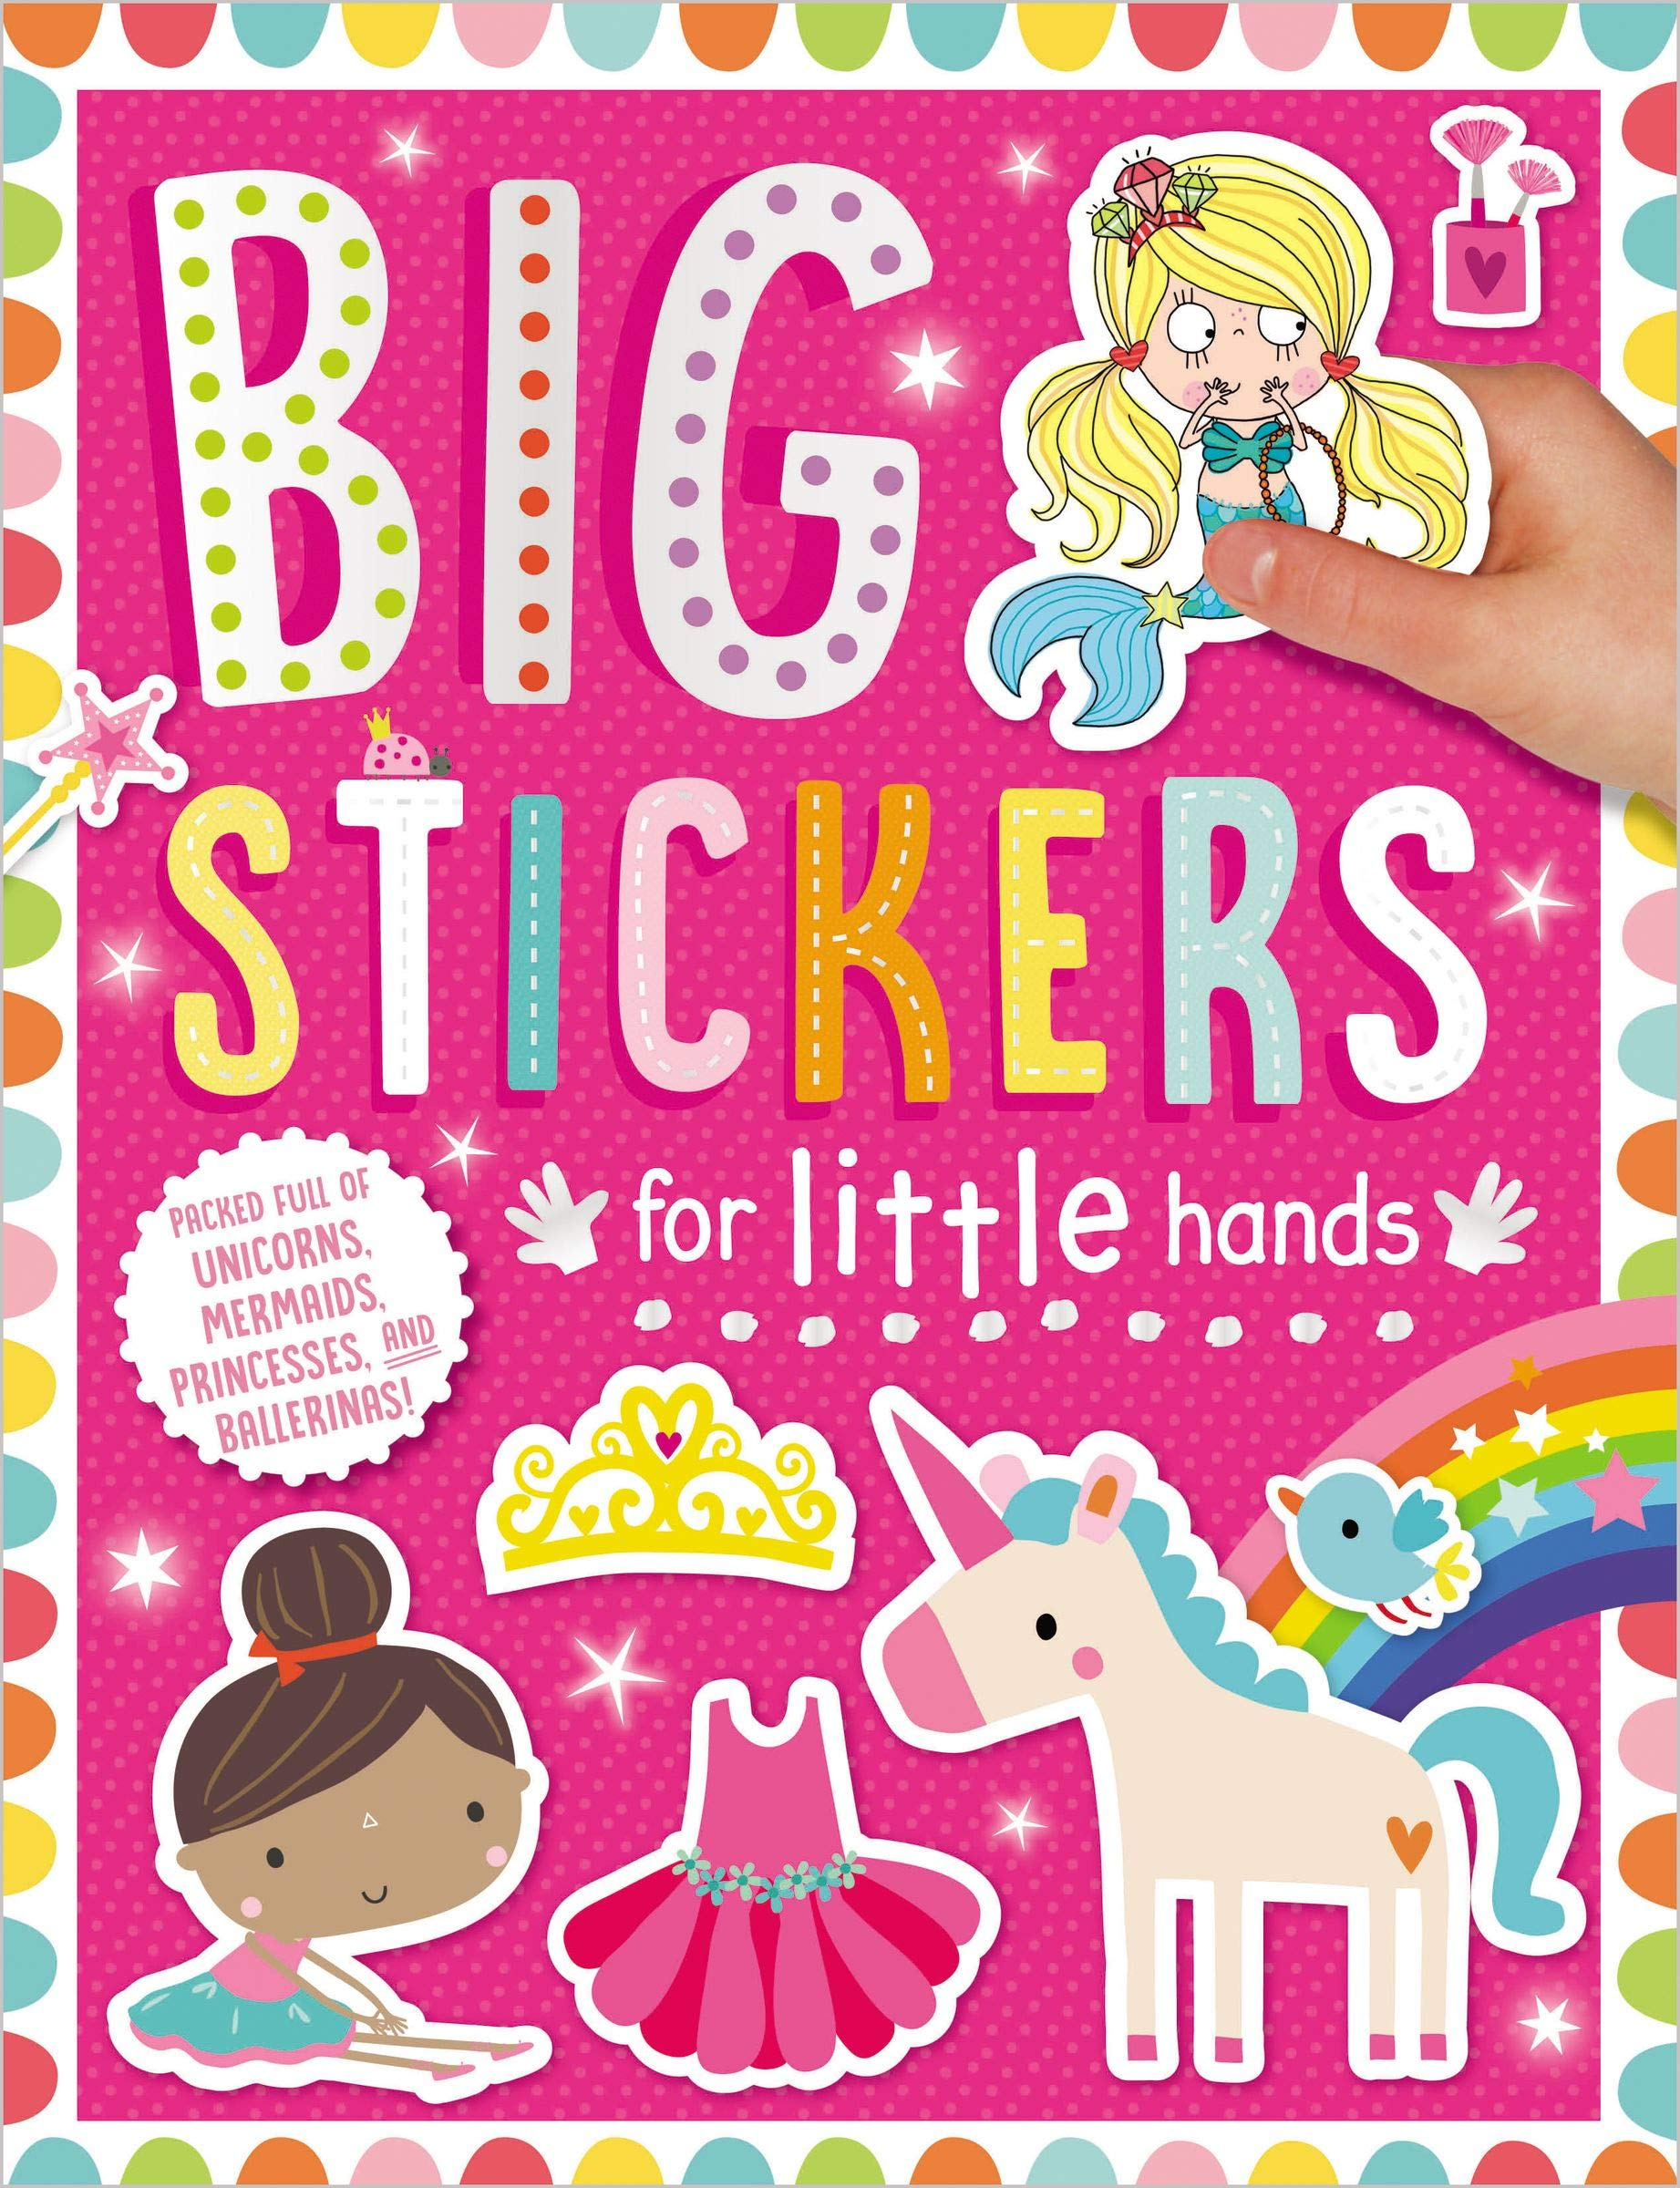 Image result for my unicorns and mermaids sticker book